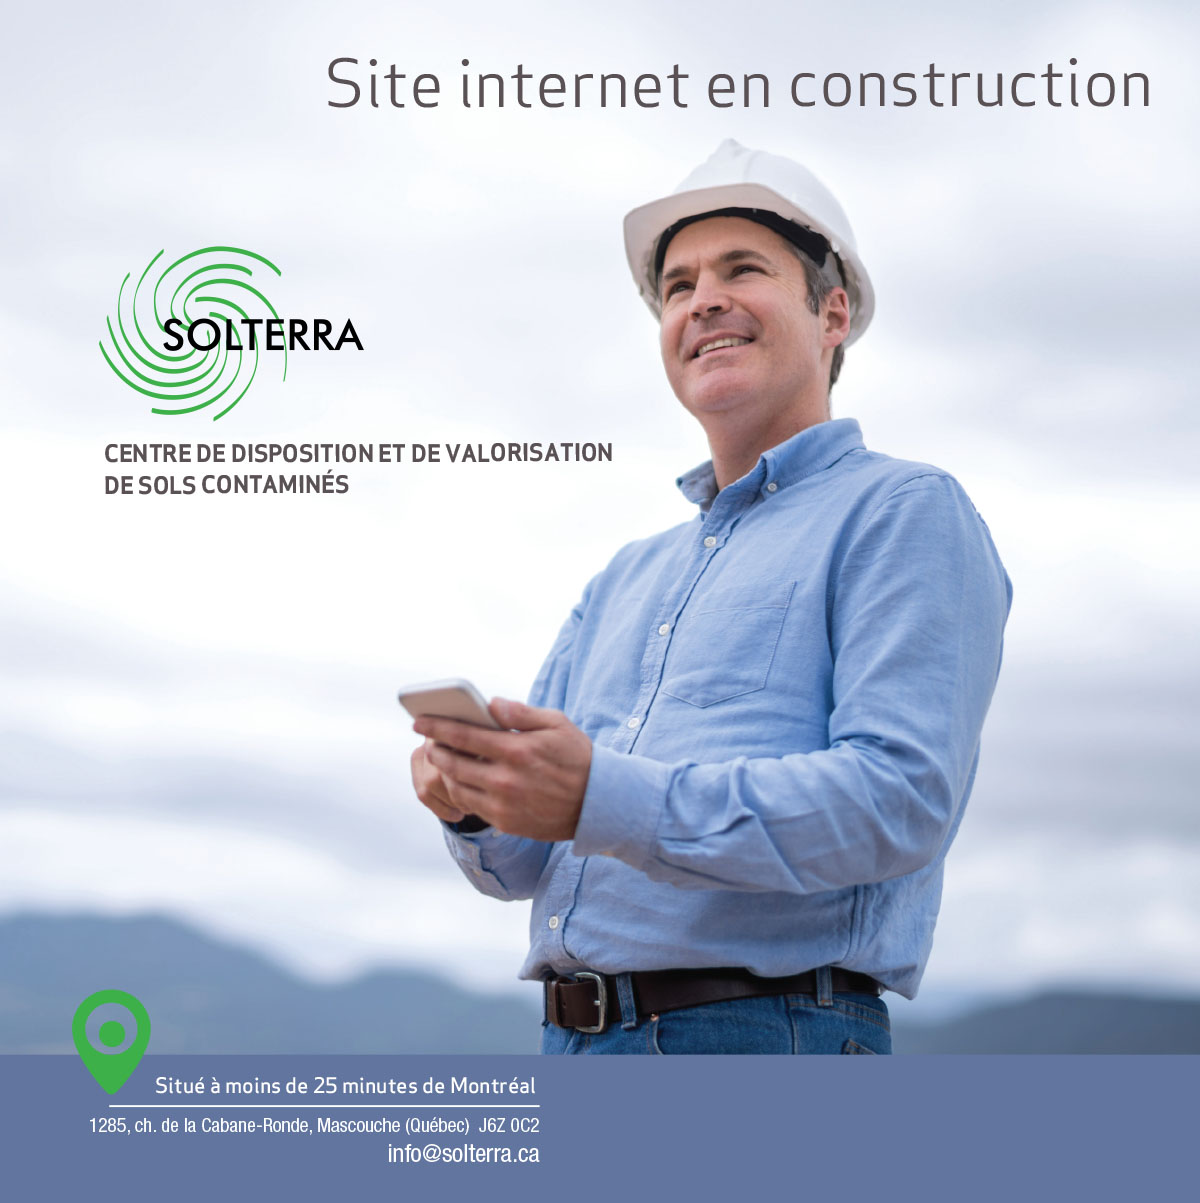 Site Solterra en construction